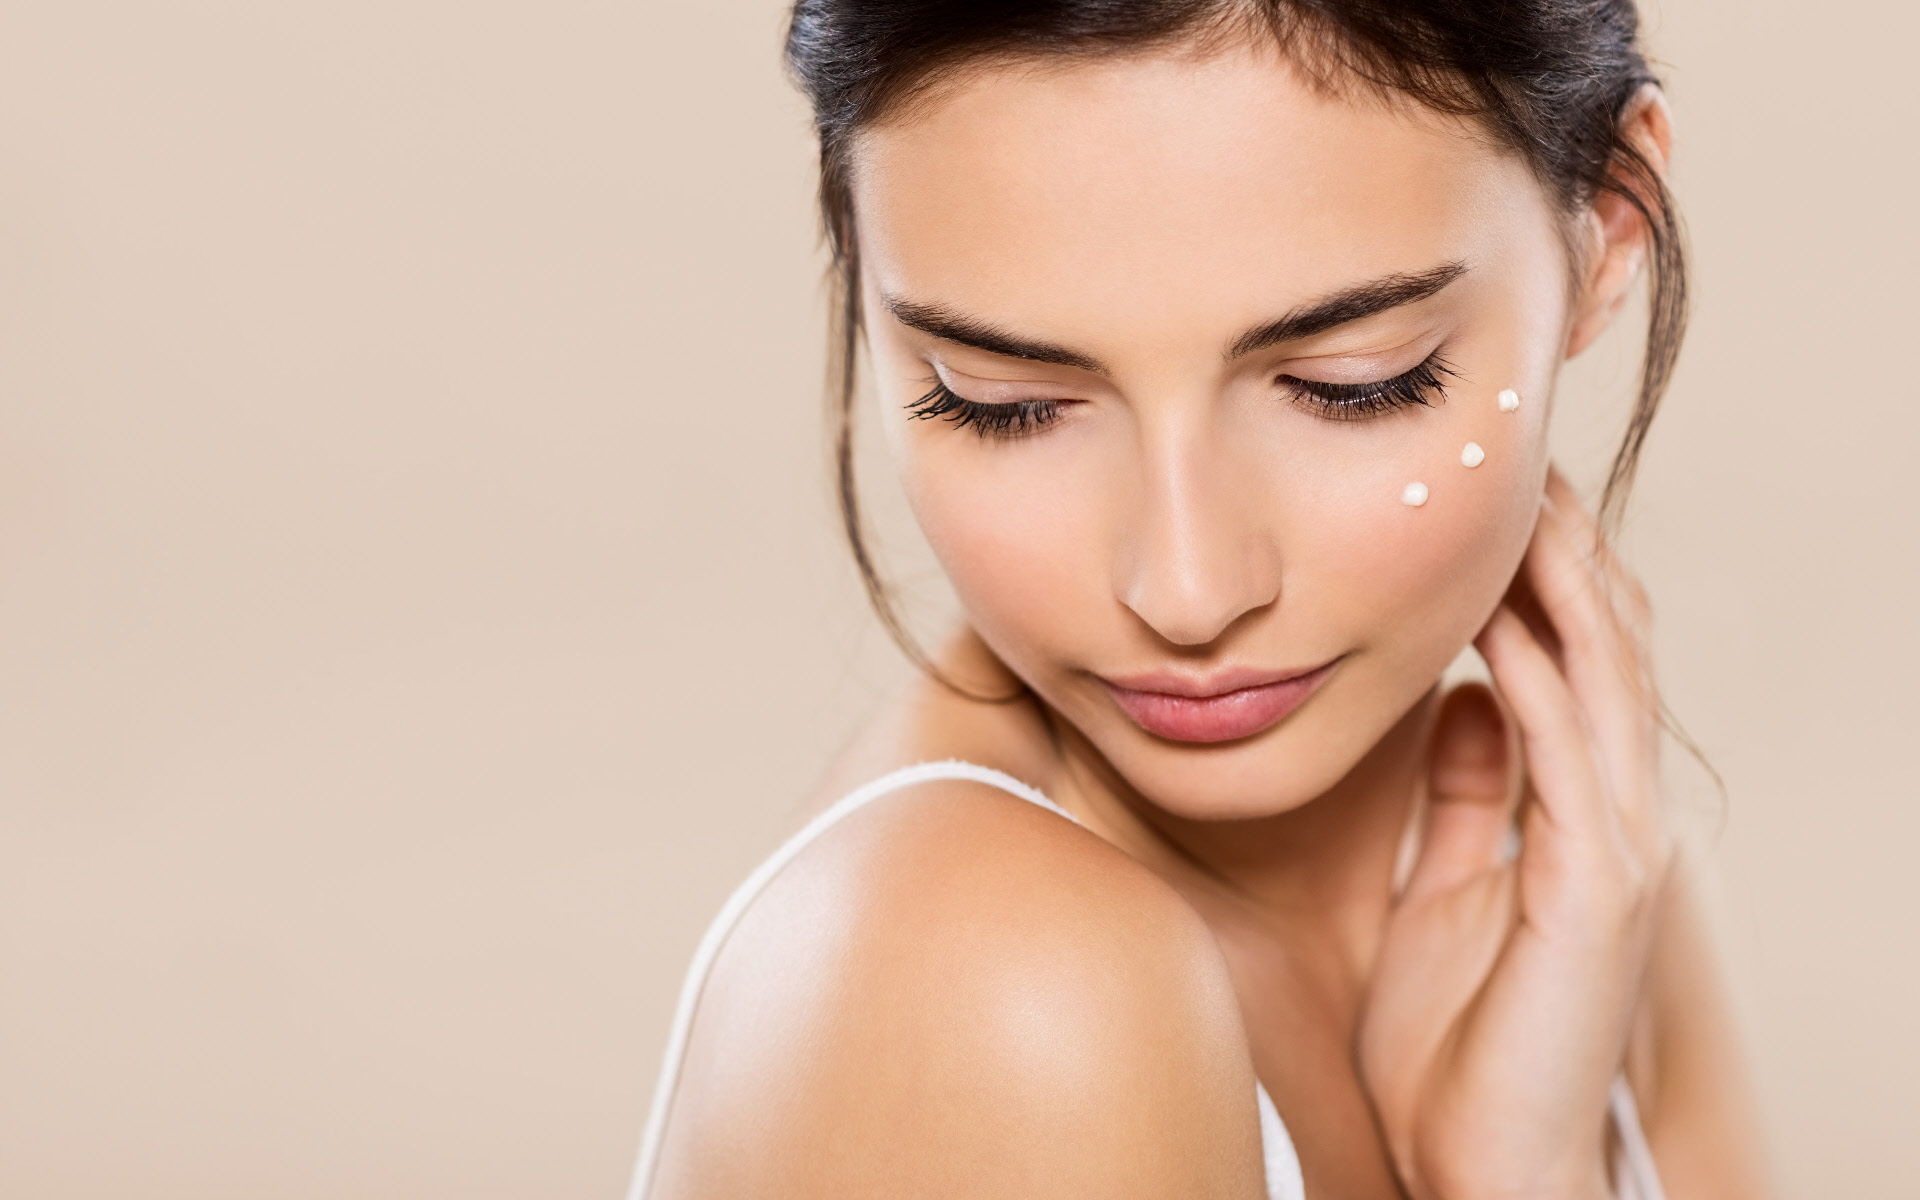 Ultra Beauty Salon in Whyteleafe - Skin Care Treatments